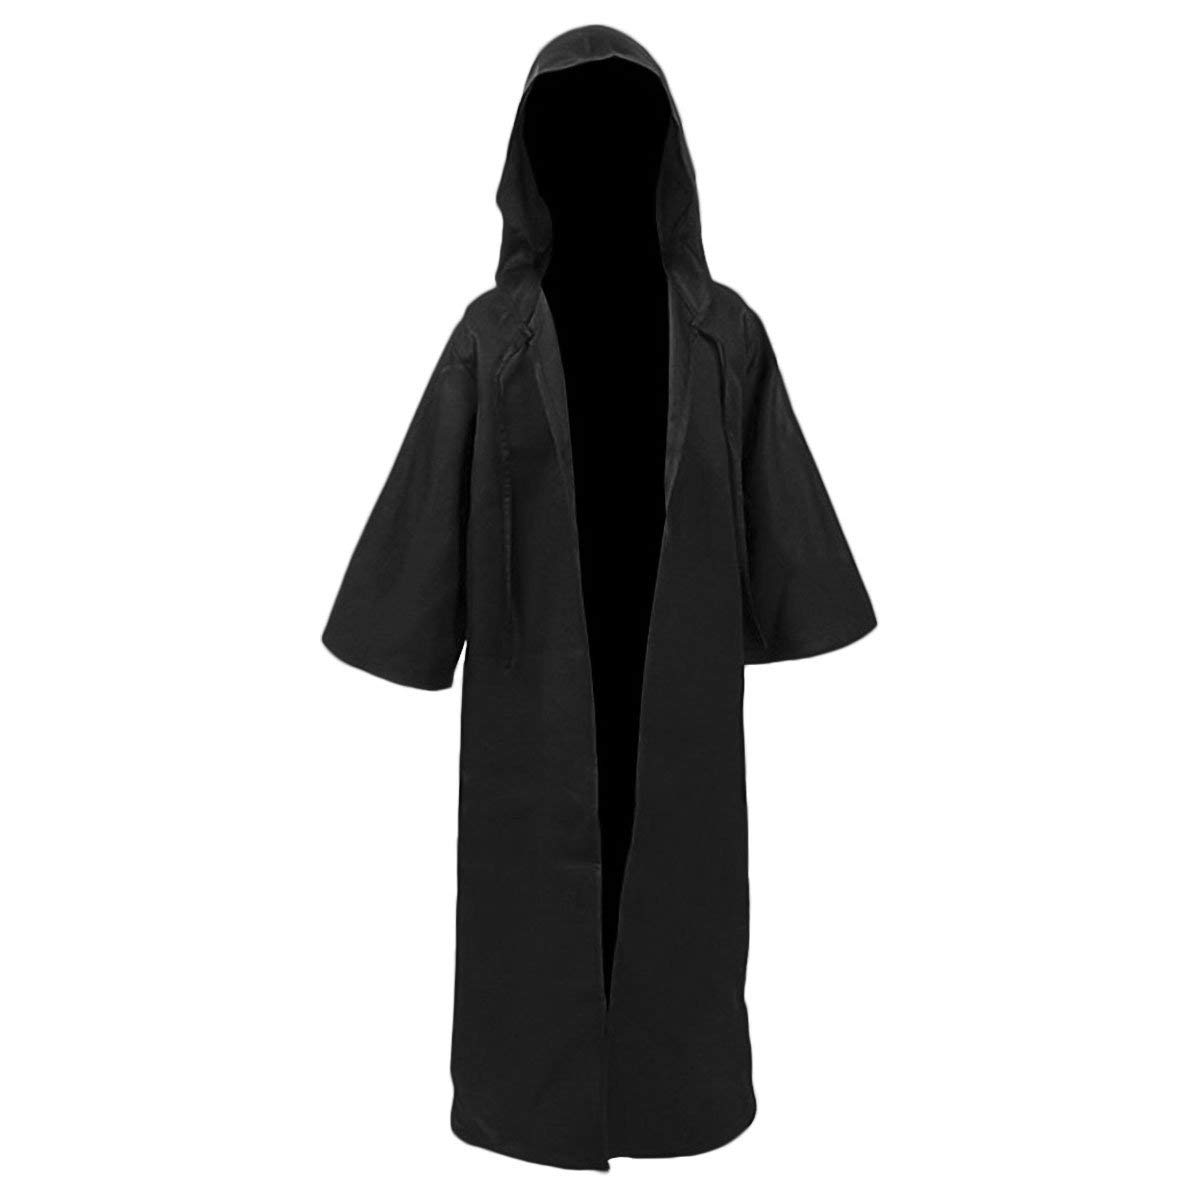 H/&ZY Unisex Tunic Halloween Robe Hooded Cloak Costume